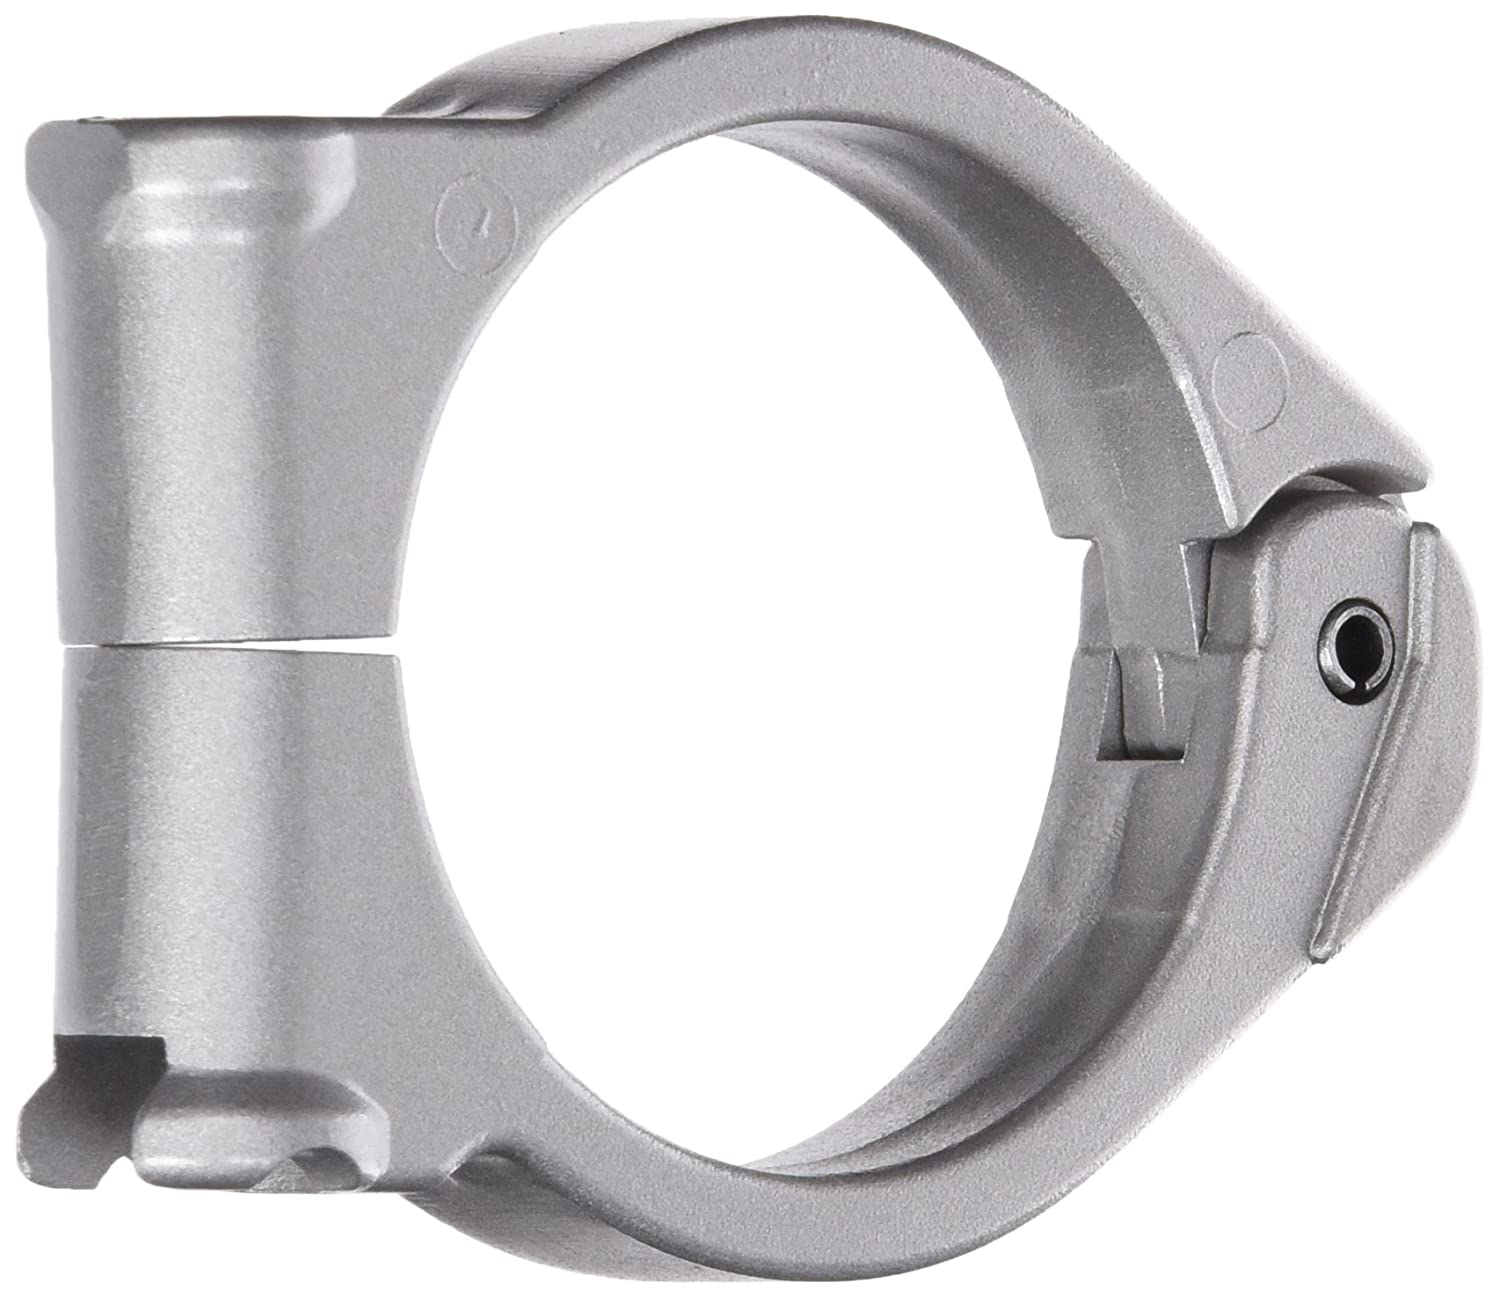 Hitachi 981960 Handle Holder Assembly DH38YE Replacement Part